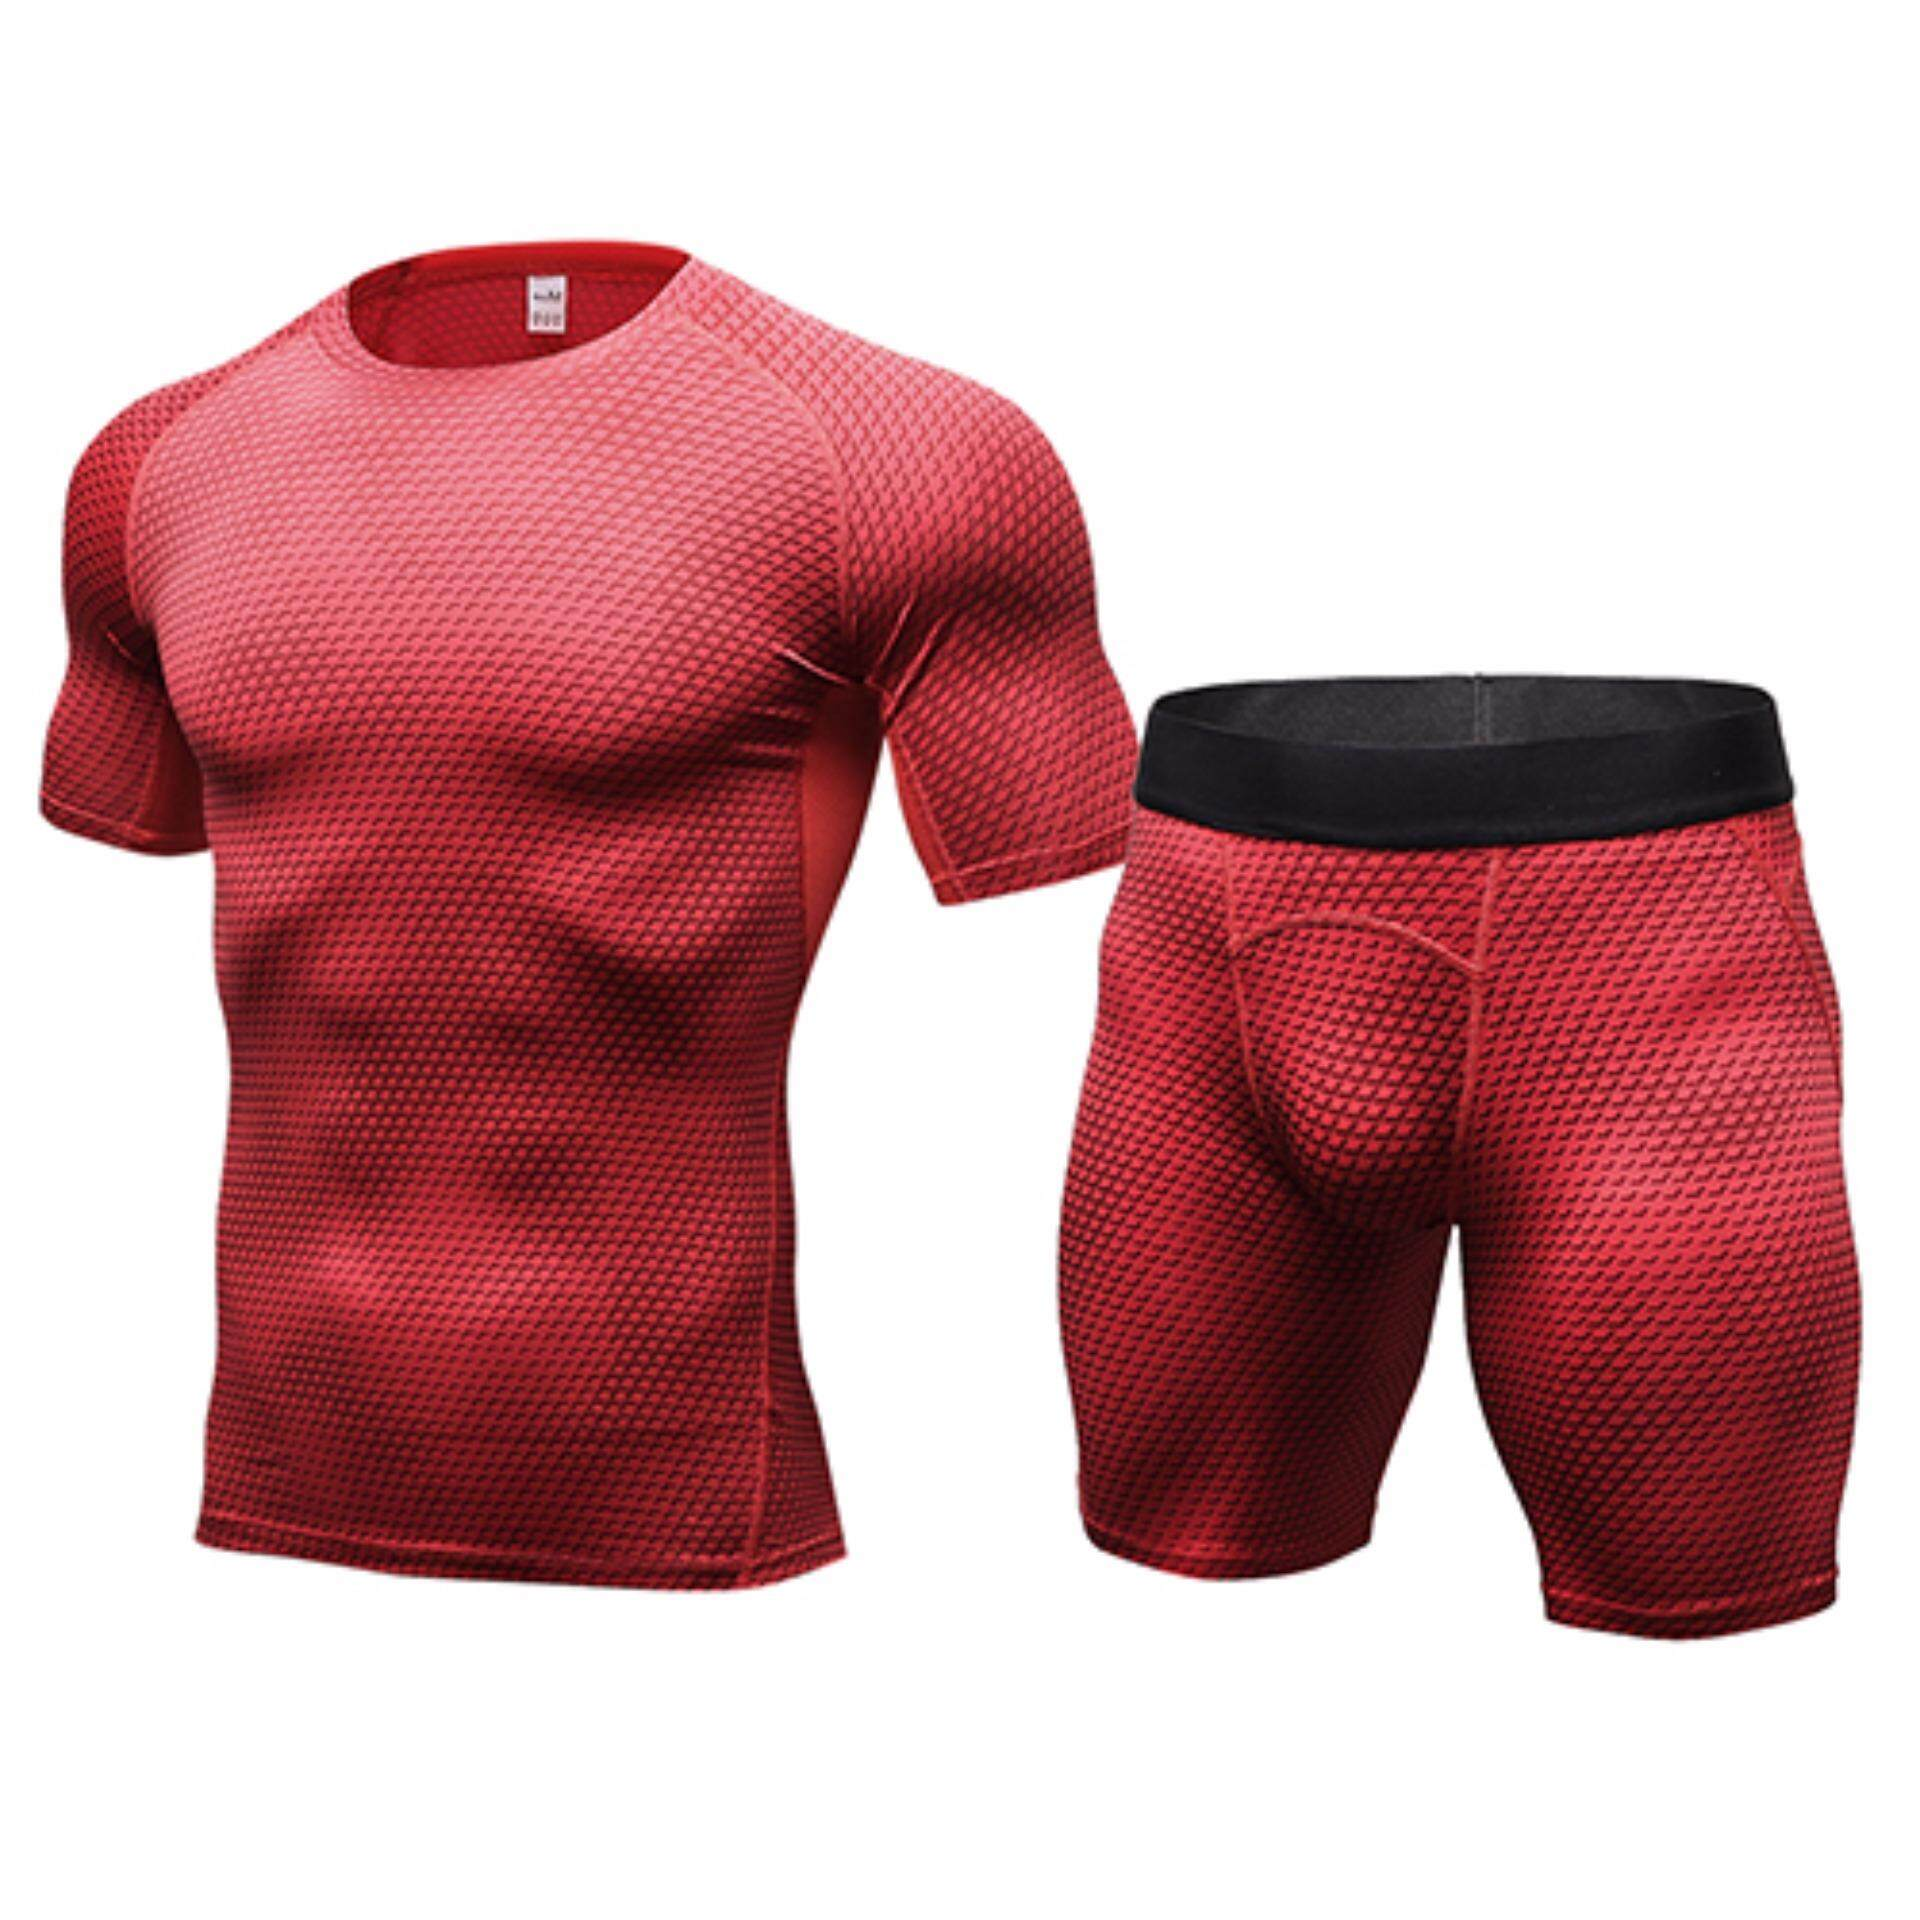 Rp 248.000. Compression Muscle Tracksuit Demix Running Set Fitness Tight T- shirt Legging Shorts Sport Suit Gym Men's Sportswear - intlIDR248000